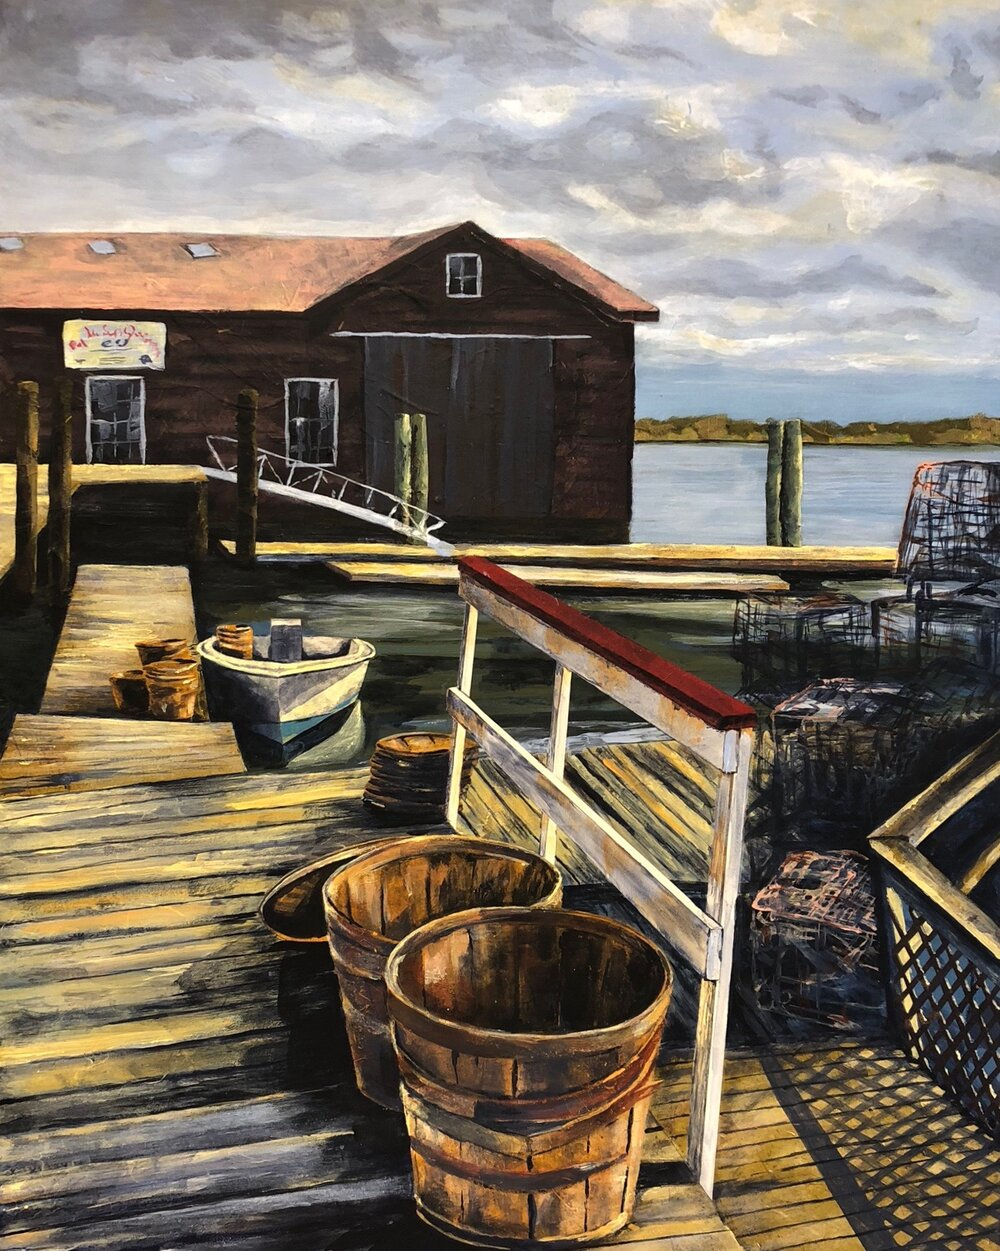 Cape May Salt Oyster Company